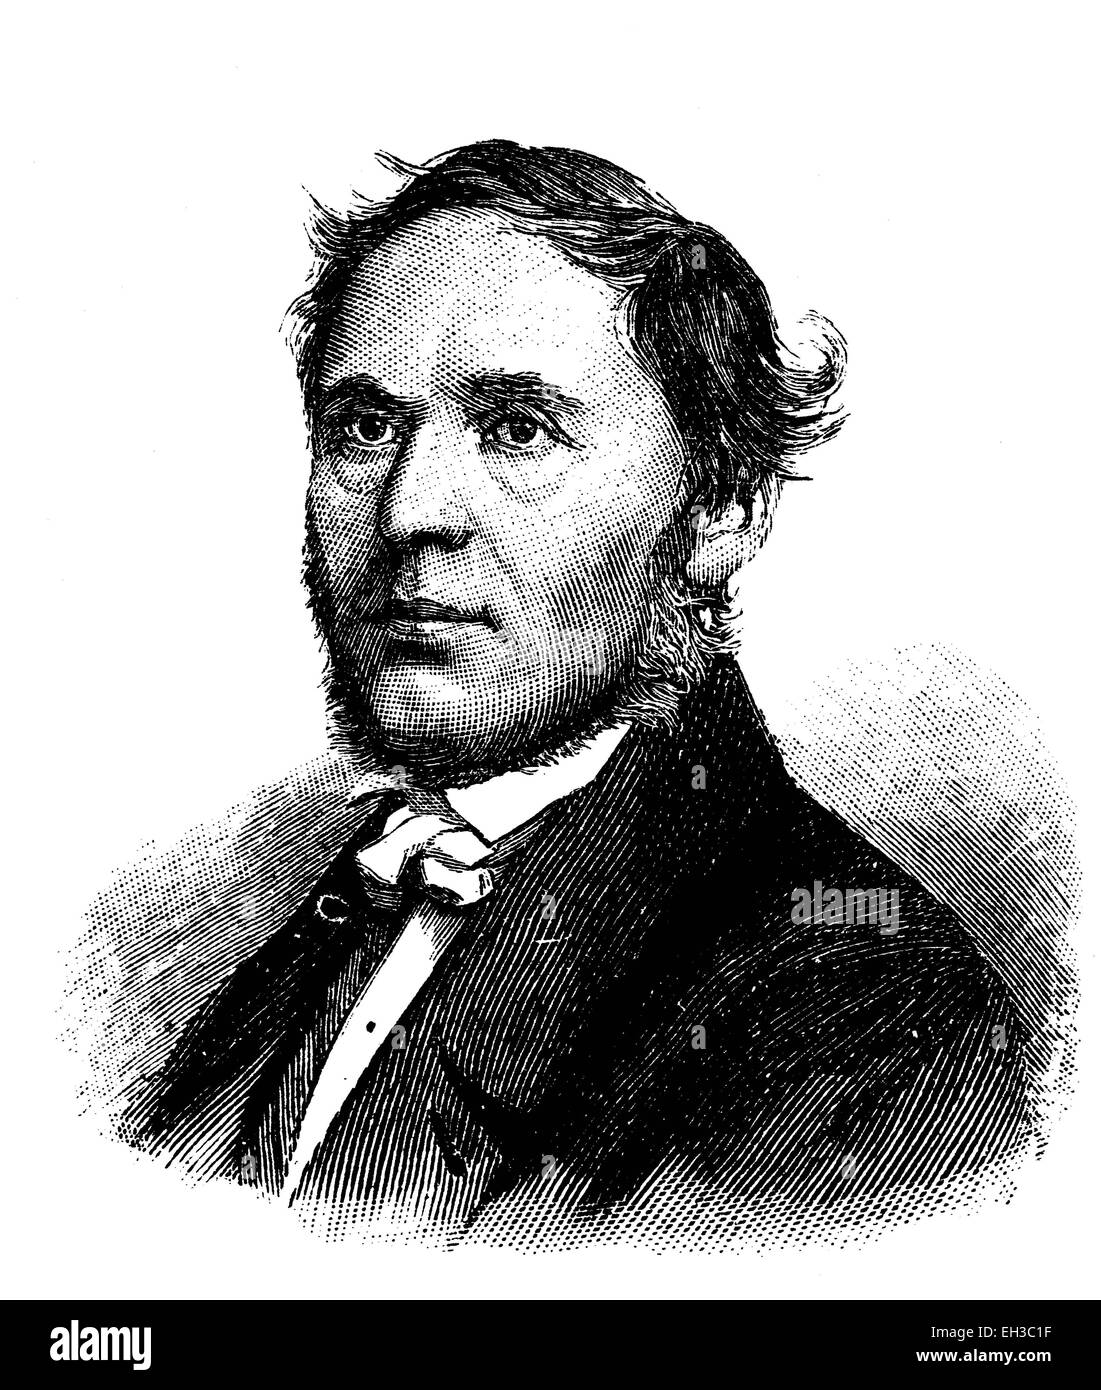 Franz Sylvester Jordan, 1792 - 1861, German jurist and politician, wood engraving, around 1880 - Stock Image